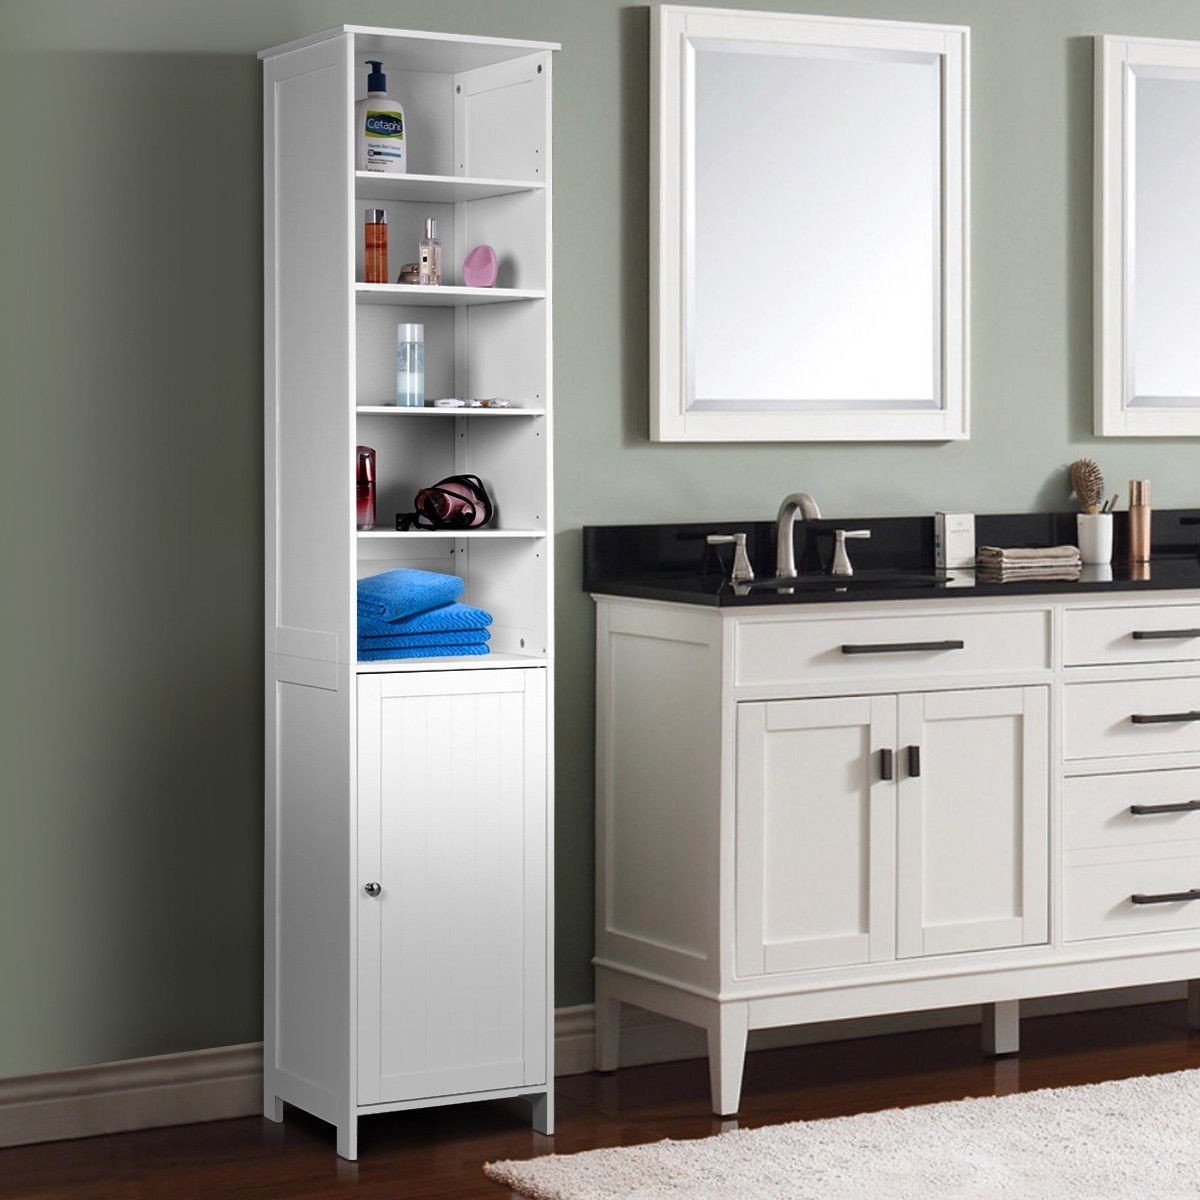 72'' Tall Cabinet, GentleShower Standing Tall Storage Cabinet, Wooden White Bathroom Cupboard with Door and 5 Adjustable Shelves, Elegant and Space-Saving